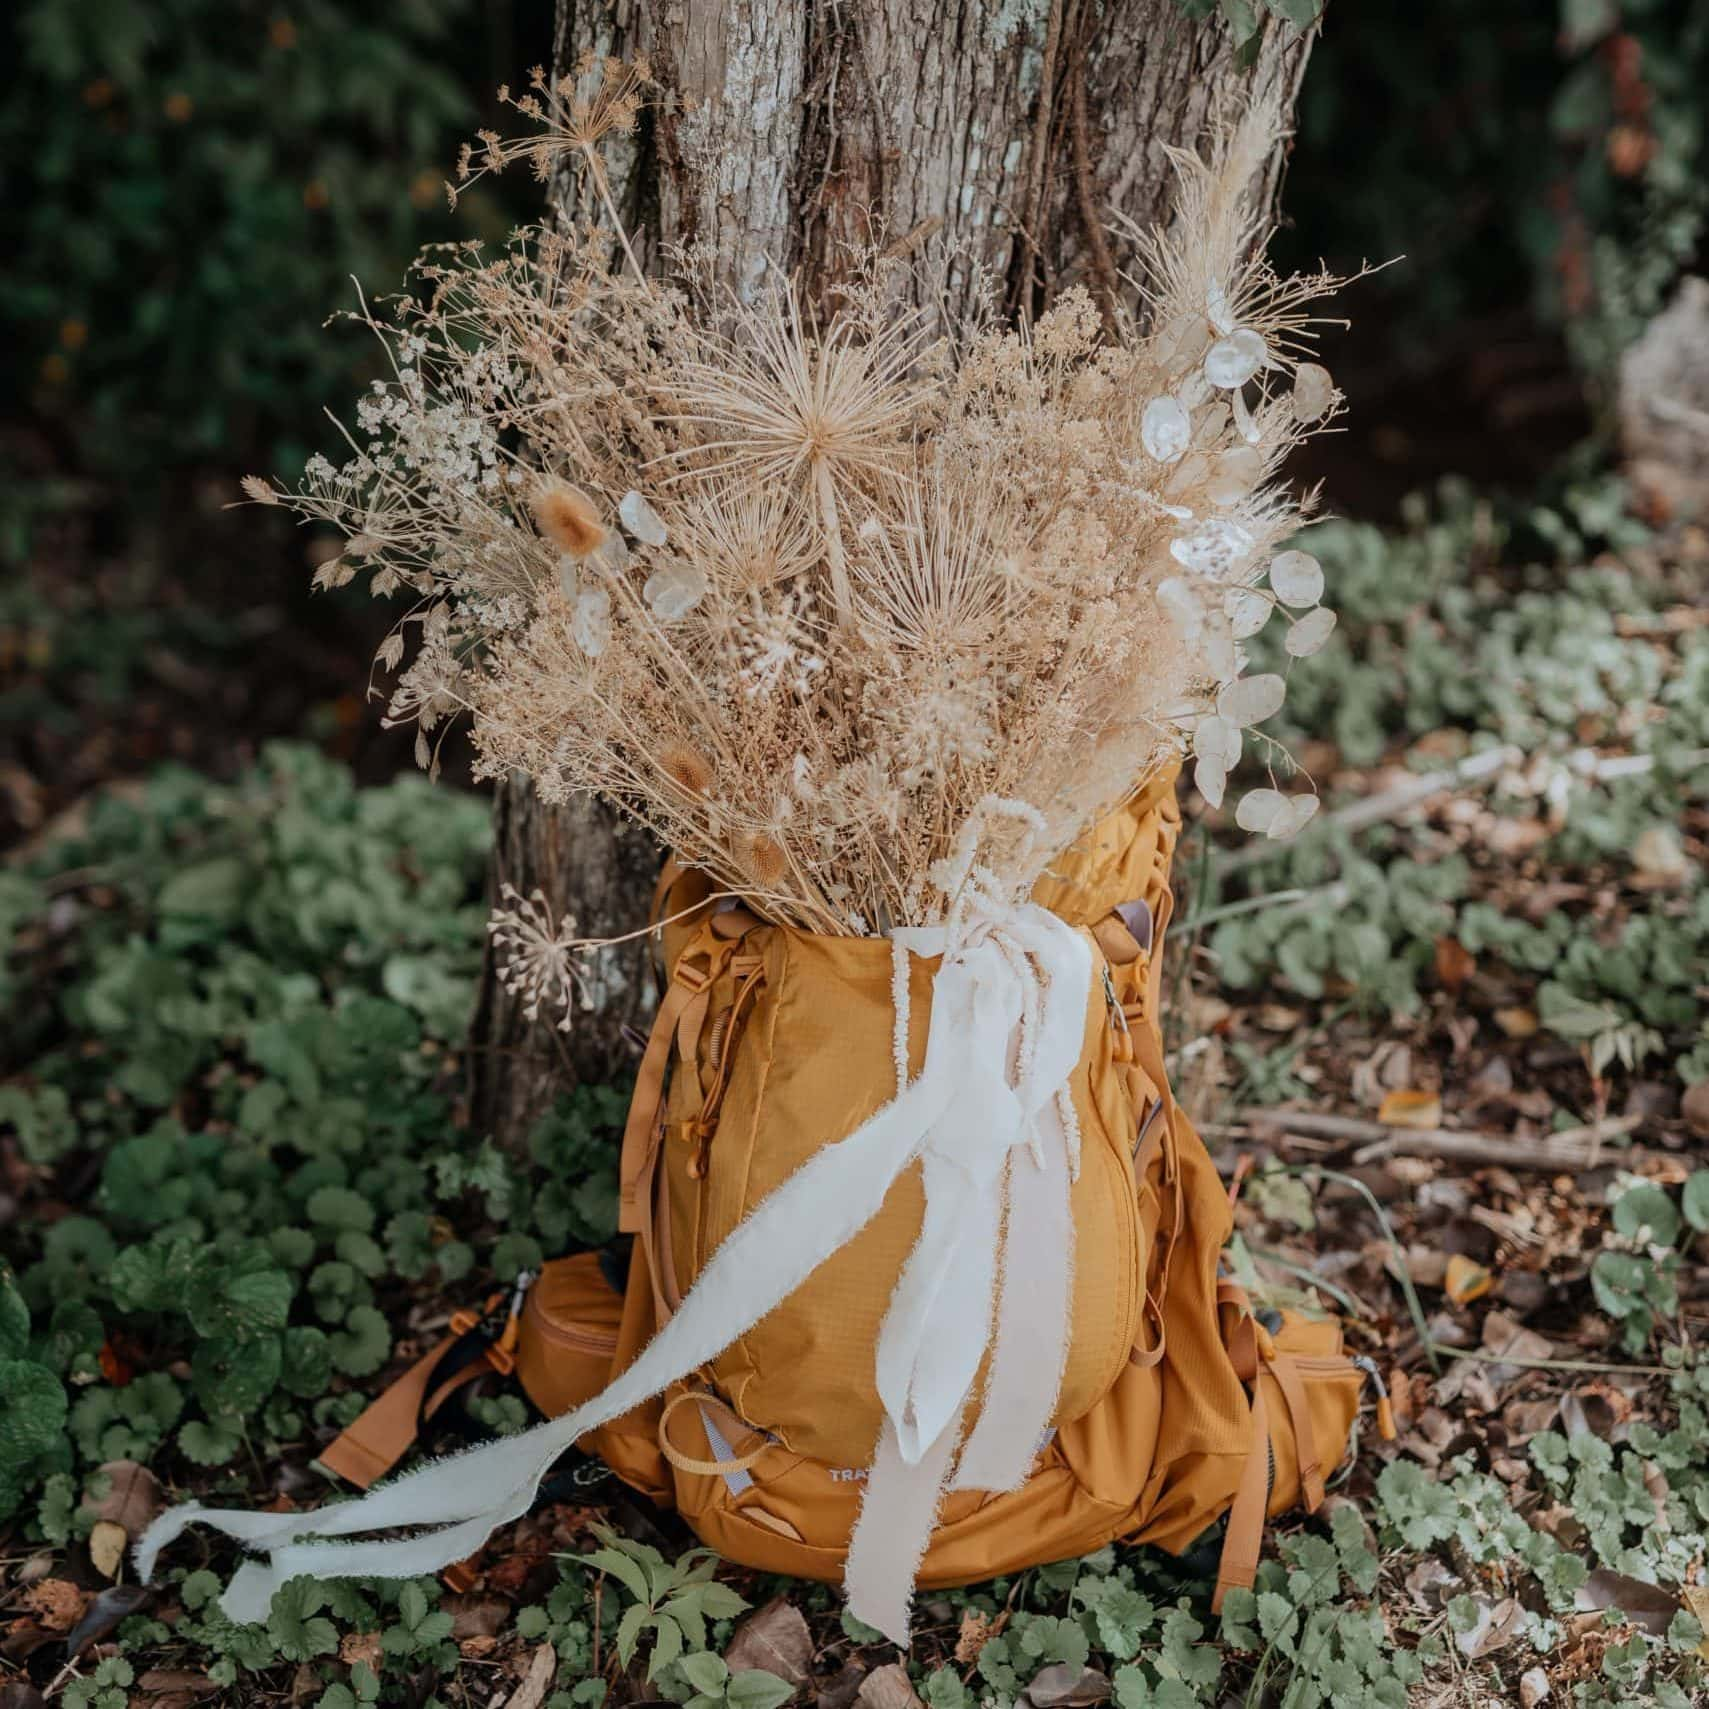 A bouquet of dried flowers and grasses is secured in a gold-colored hiking backpack for an elopement. Photographed by virginia elopement photographer, Flit Photography